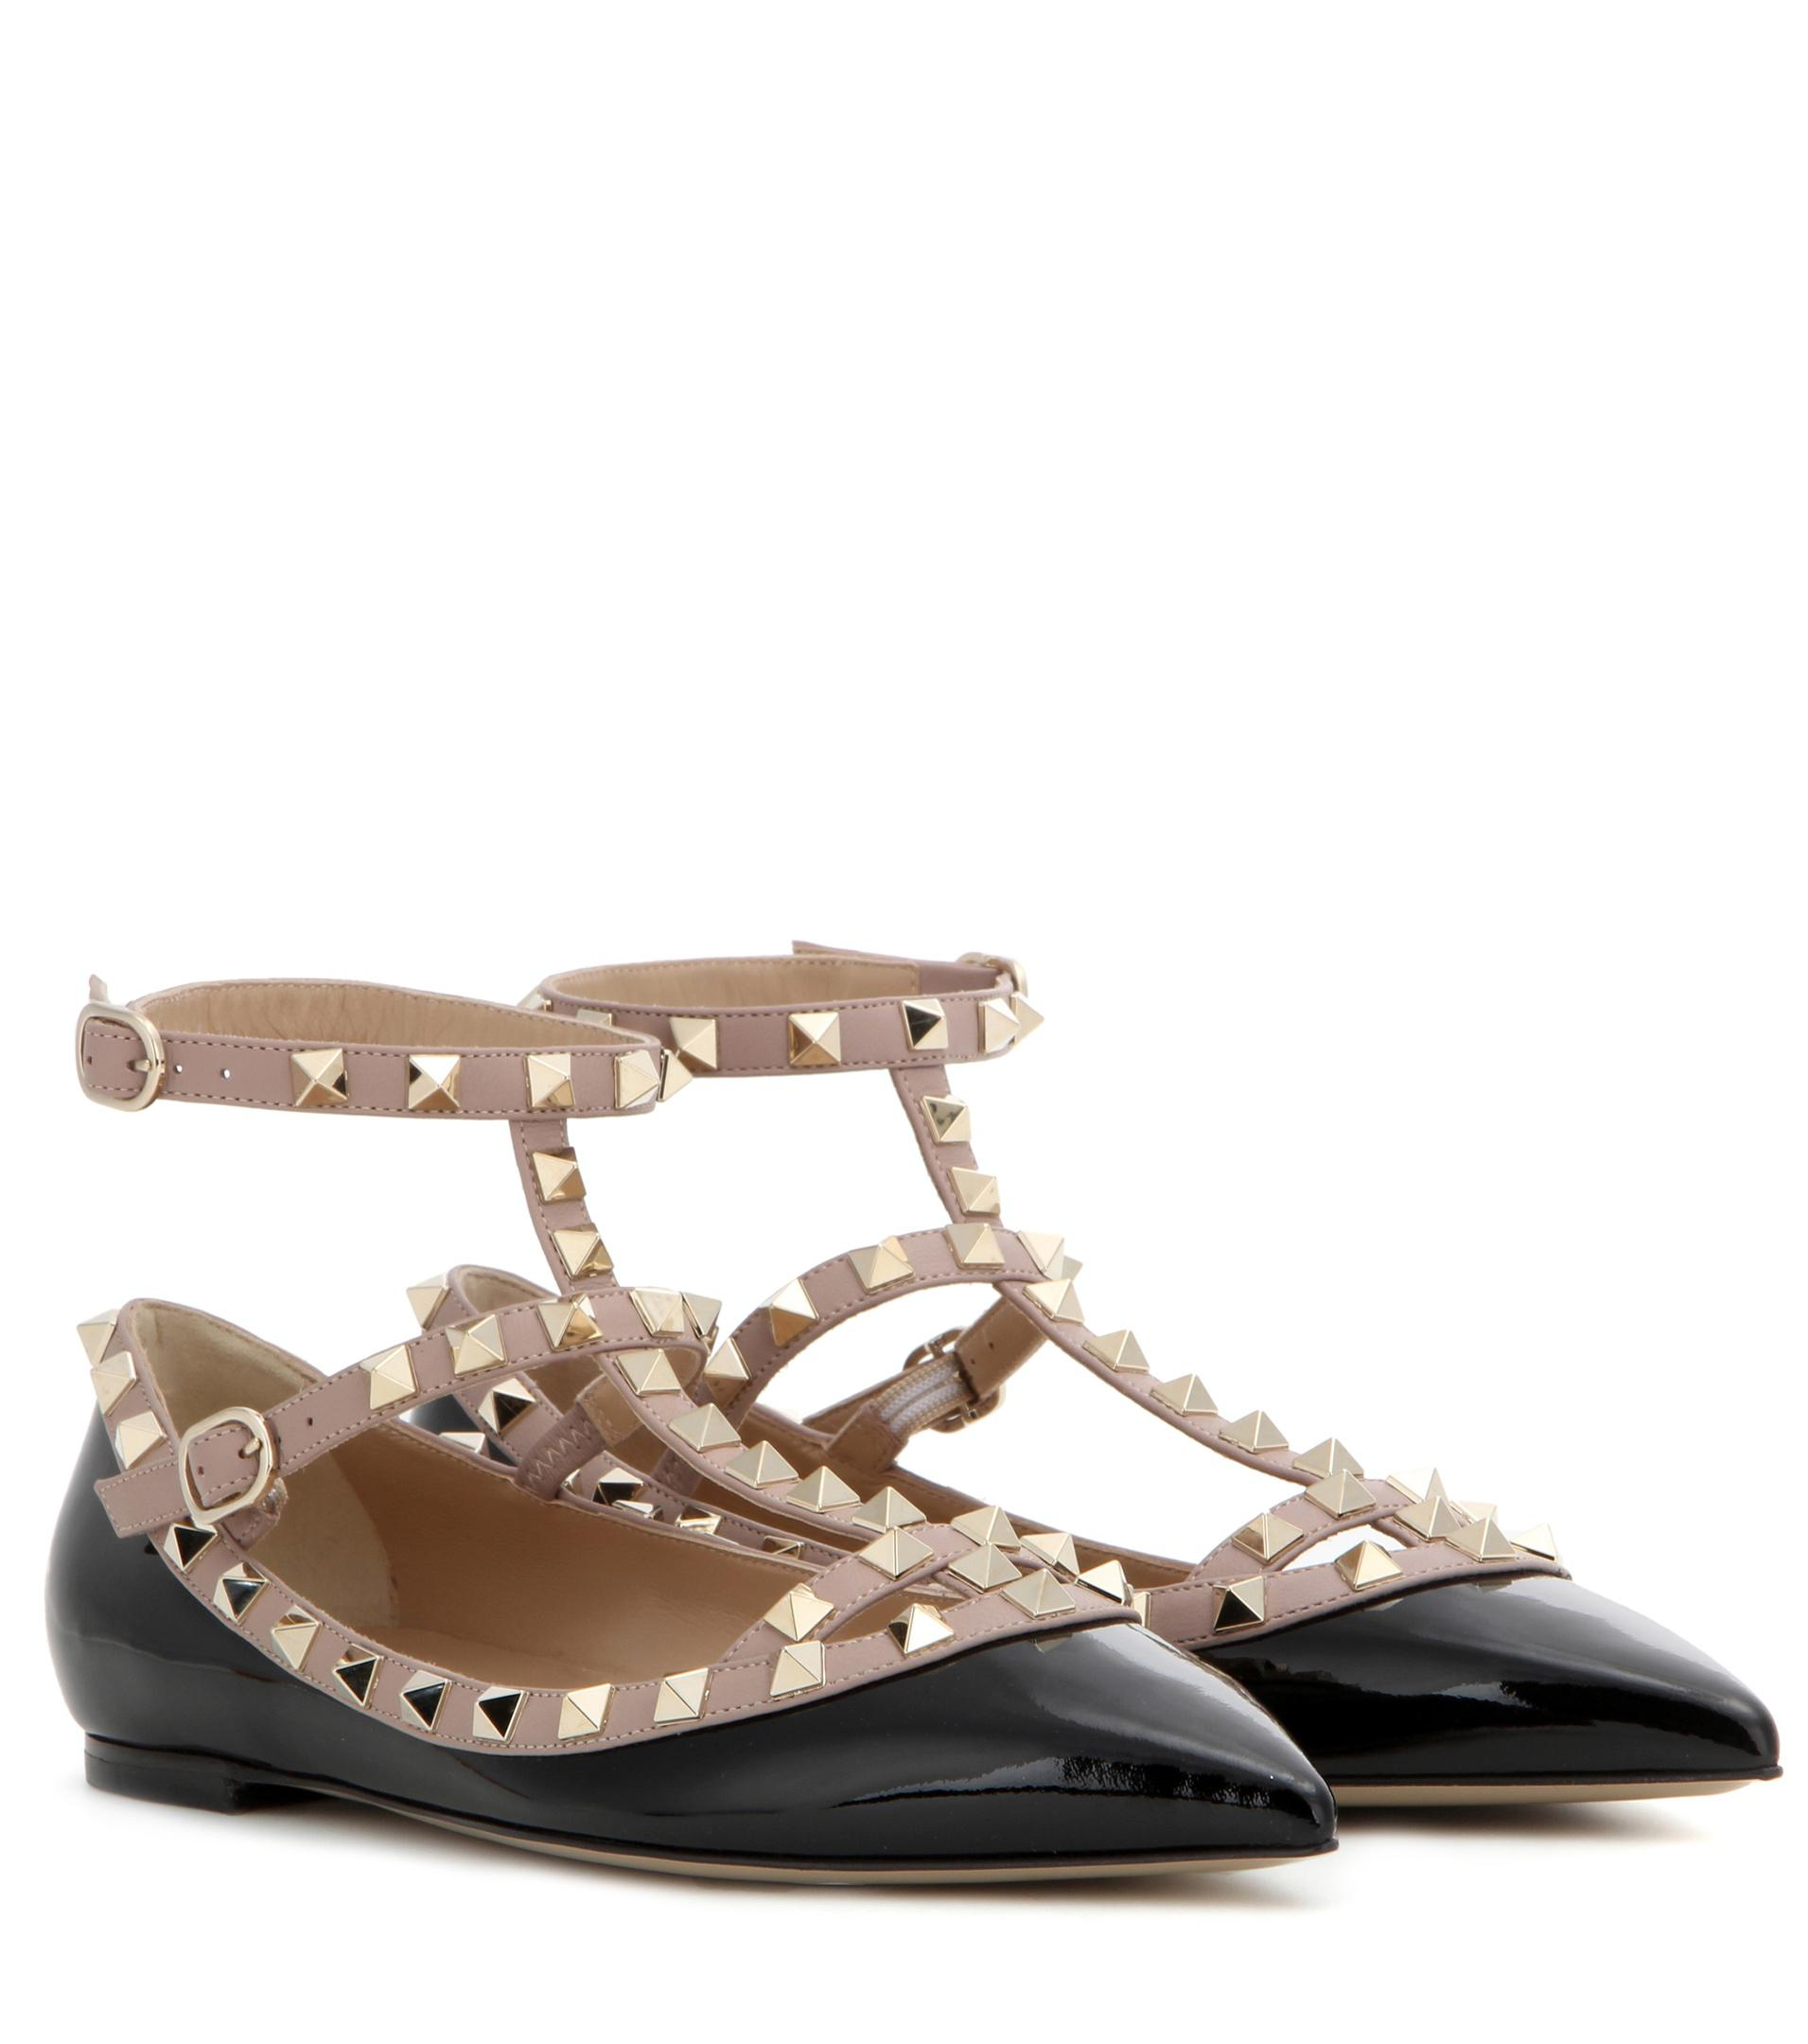 1b568d98f297 Valentino Rockstud Patent Leather Ballerinas in Pink - Save 53% - Lyst